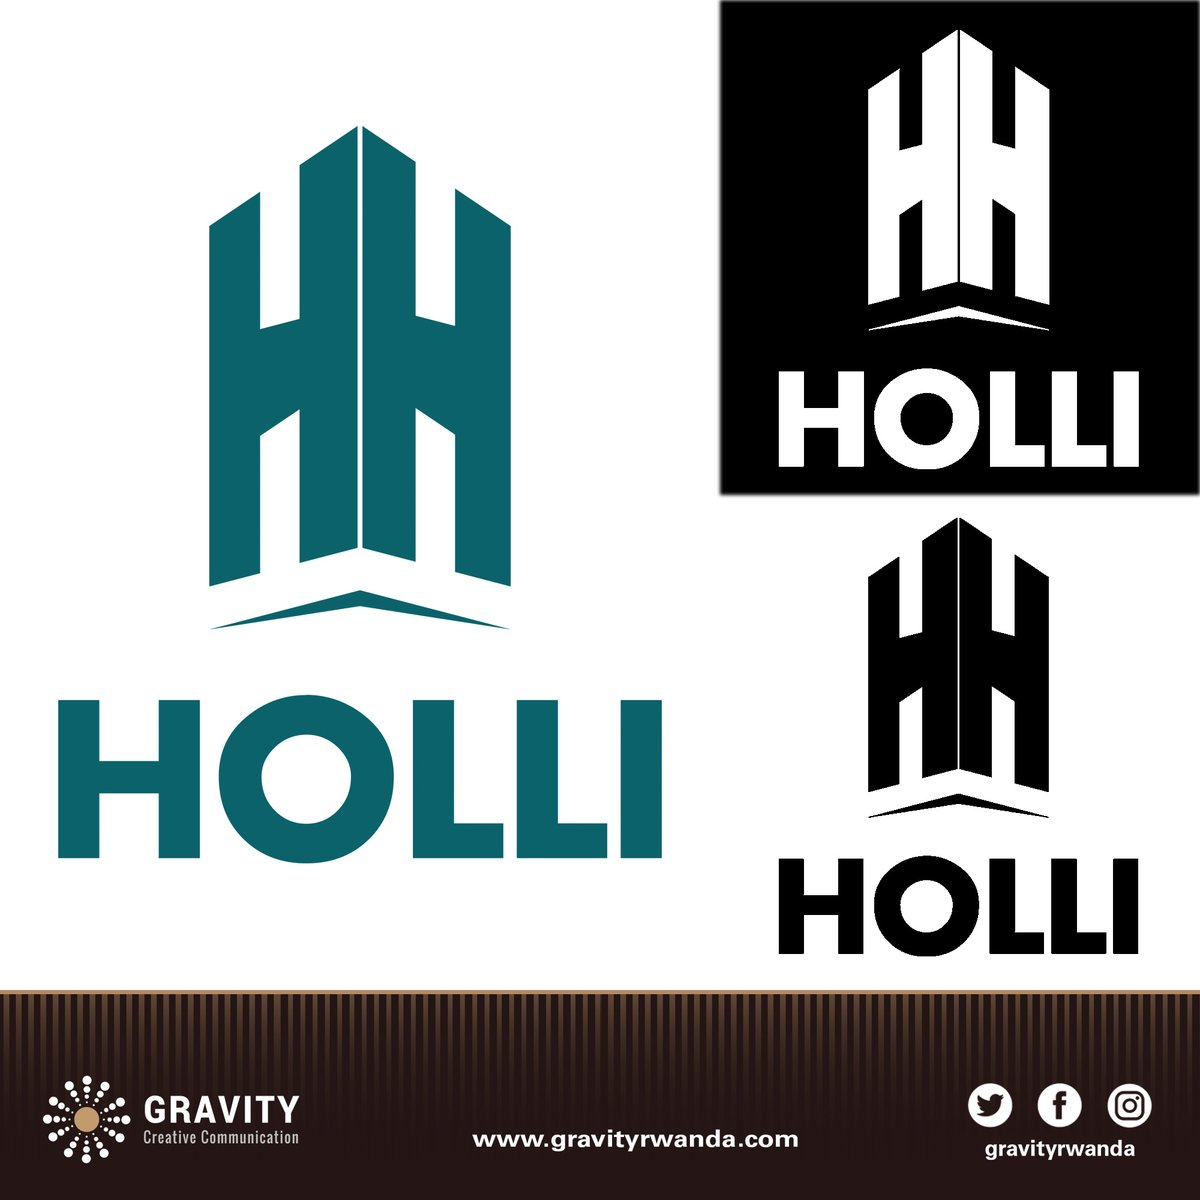 We present to you the logo of HOLLI #ContagiousVisuals #WeSolveWeDo #WeLoveWhatWeDo #photoshop #design #graphicdesign #photooftheday #art #sketch #like #illustrator #logodesign #graphicdesigners #illustration #logo #graphicdesigndaily https://t.co/lySzxb6ngT